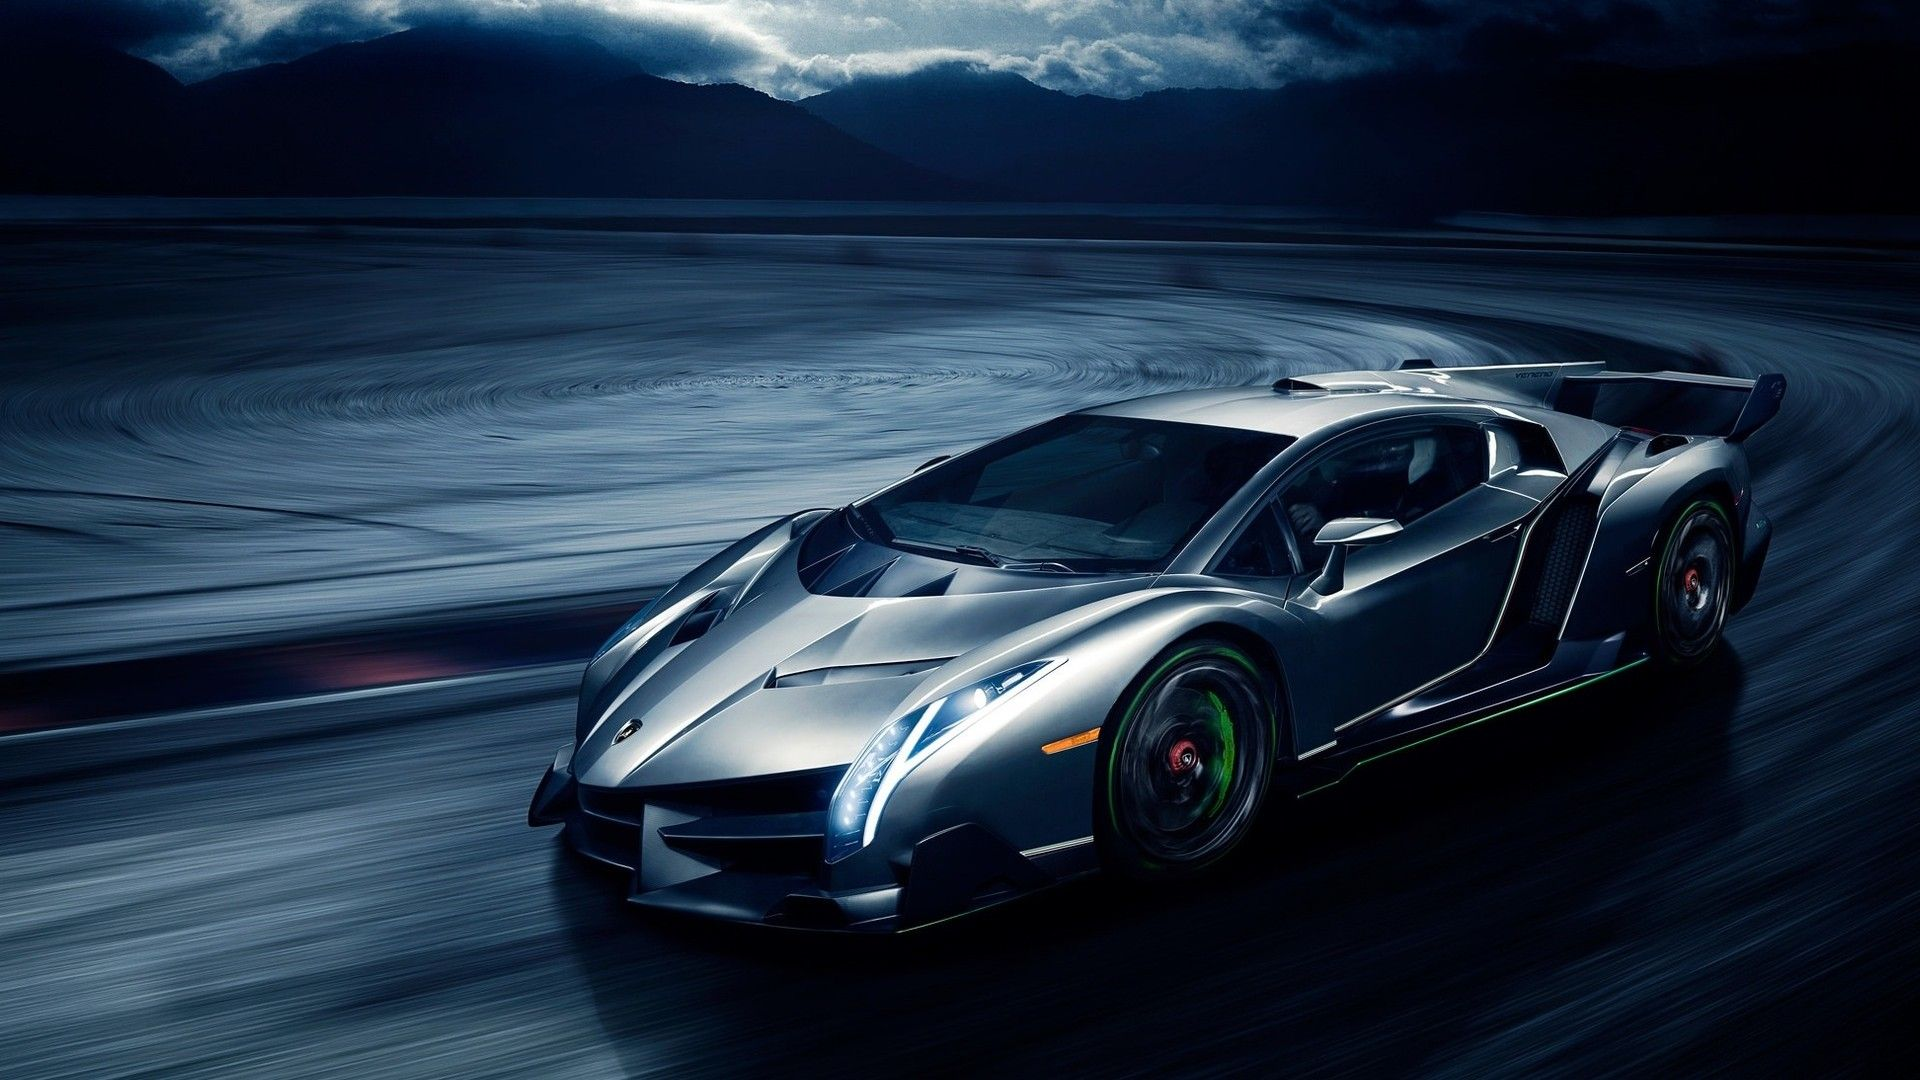 2015 Lamborghini Veneno High Quality Photo